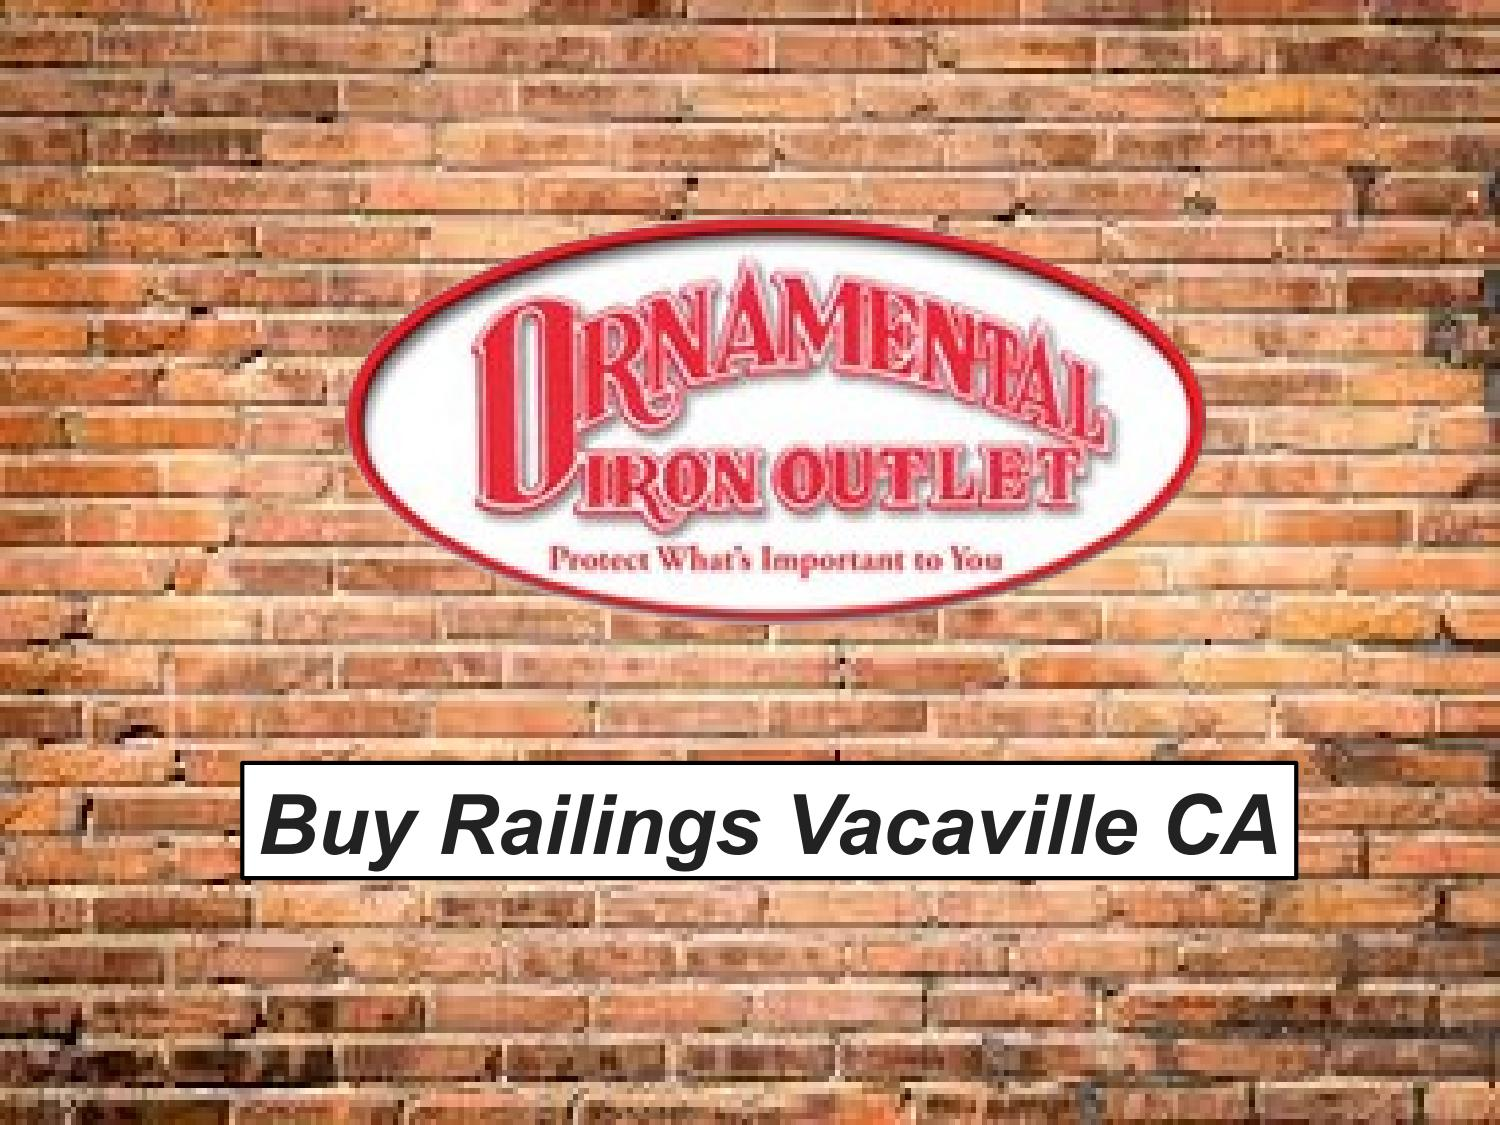 Buy Railings Vacaville Ca By Ornamental Iron Outlet Issuu